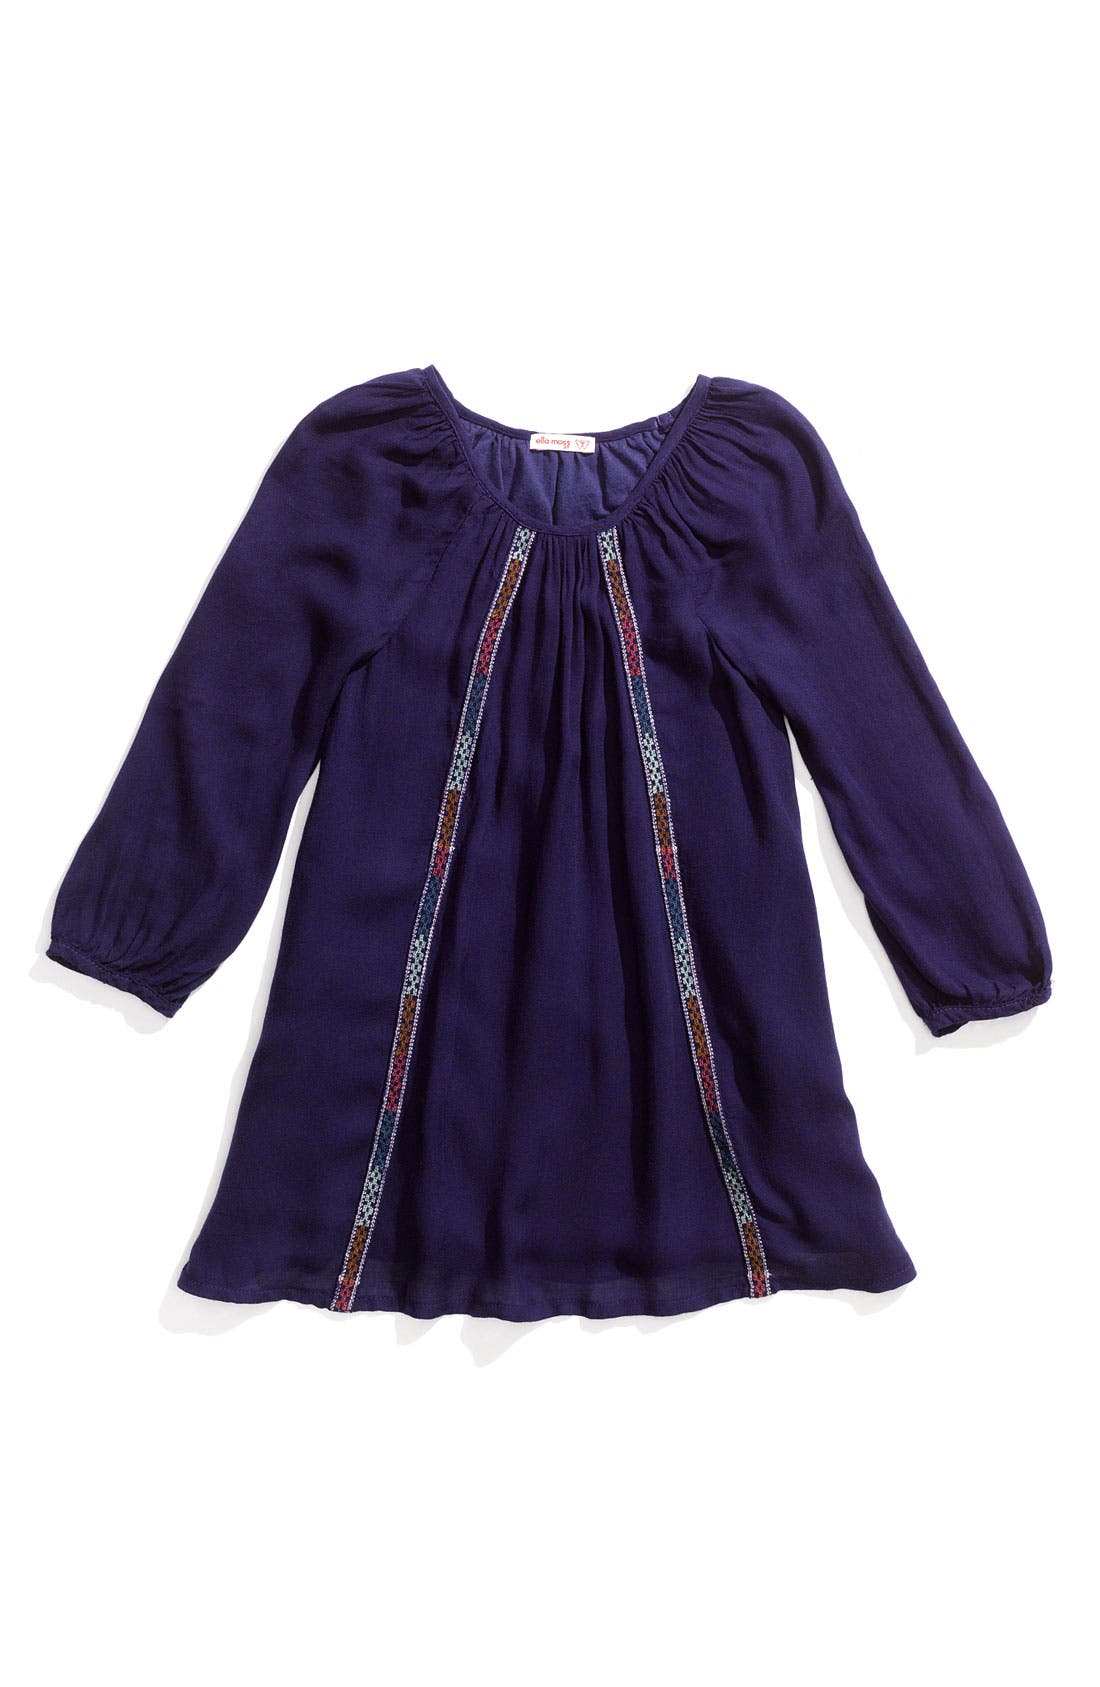 Alternate Image 1 Selected - Little Ella 'Surrey' Dress (Toddler)